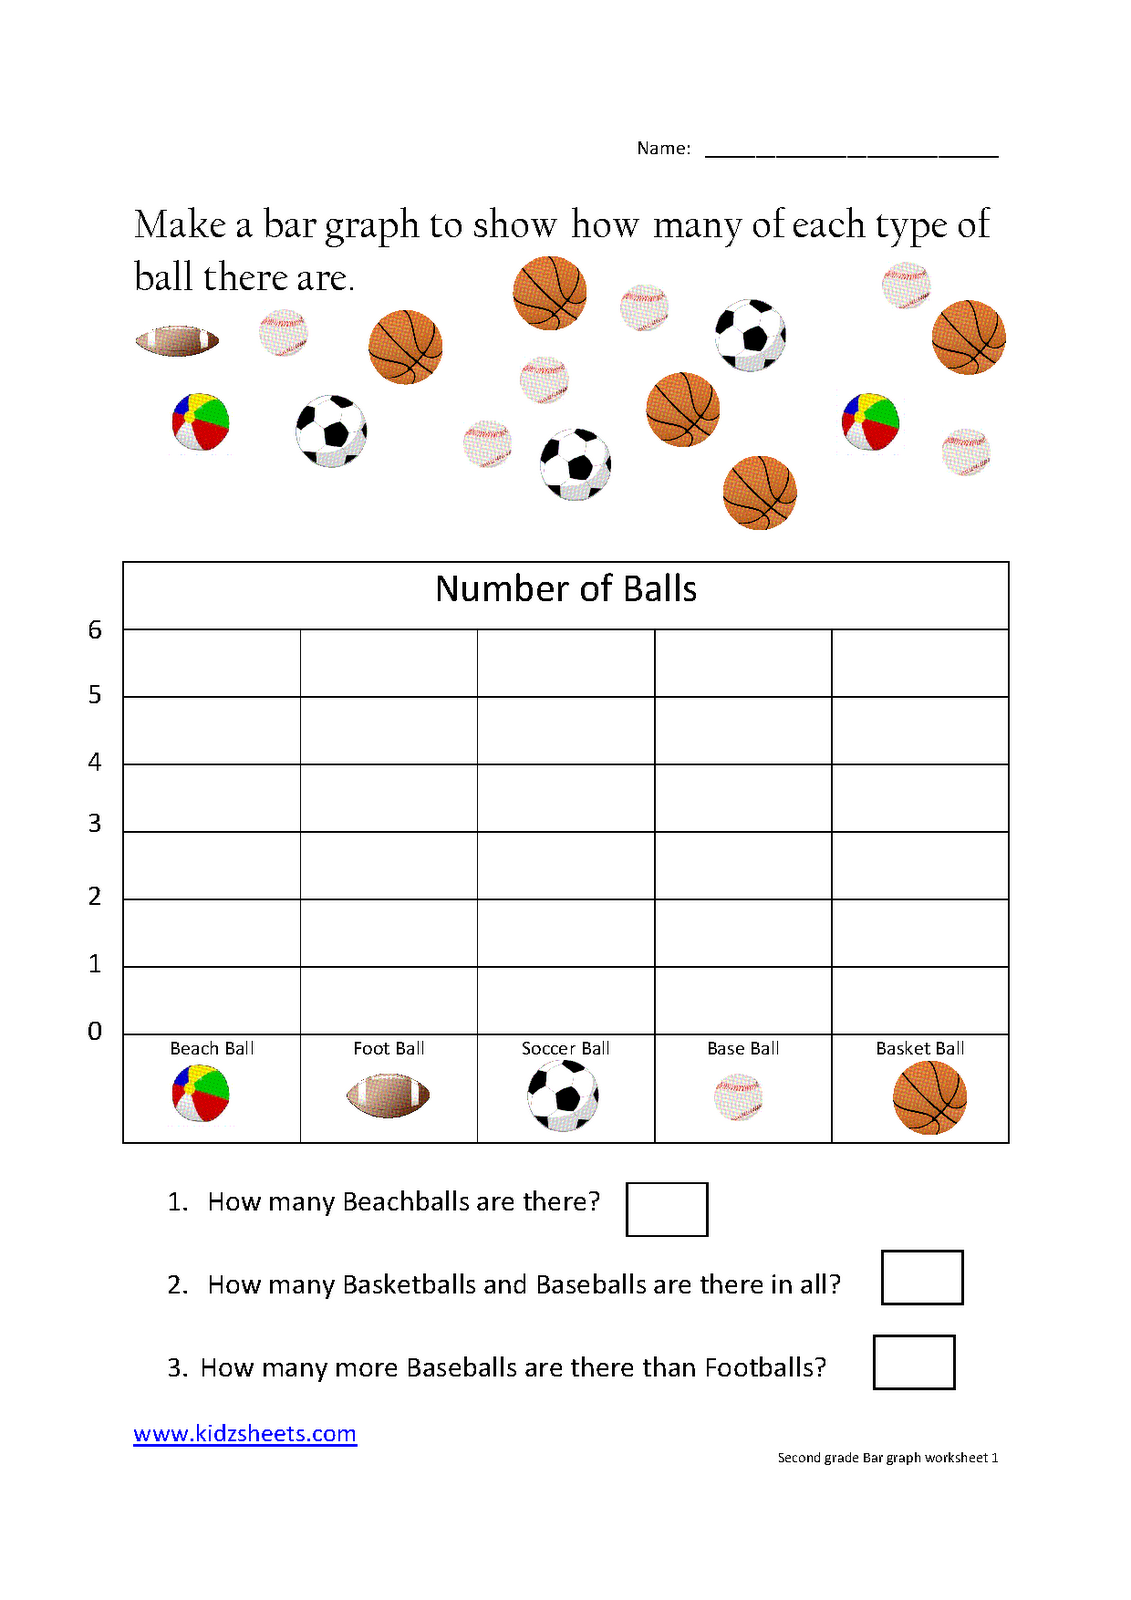 Worksheets Online Printable Bar Graph kidz worksheets second grade bar graph worksheet1 graph